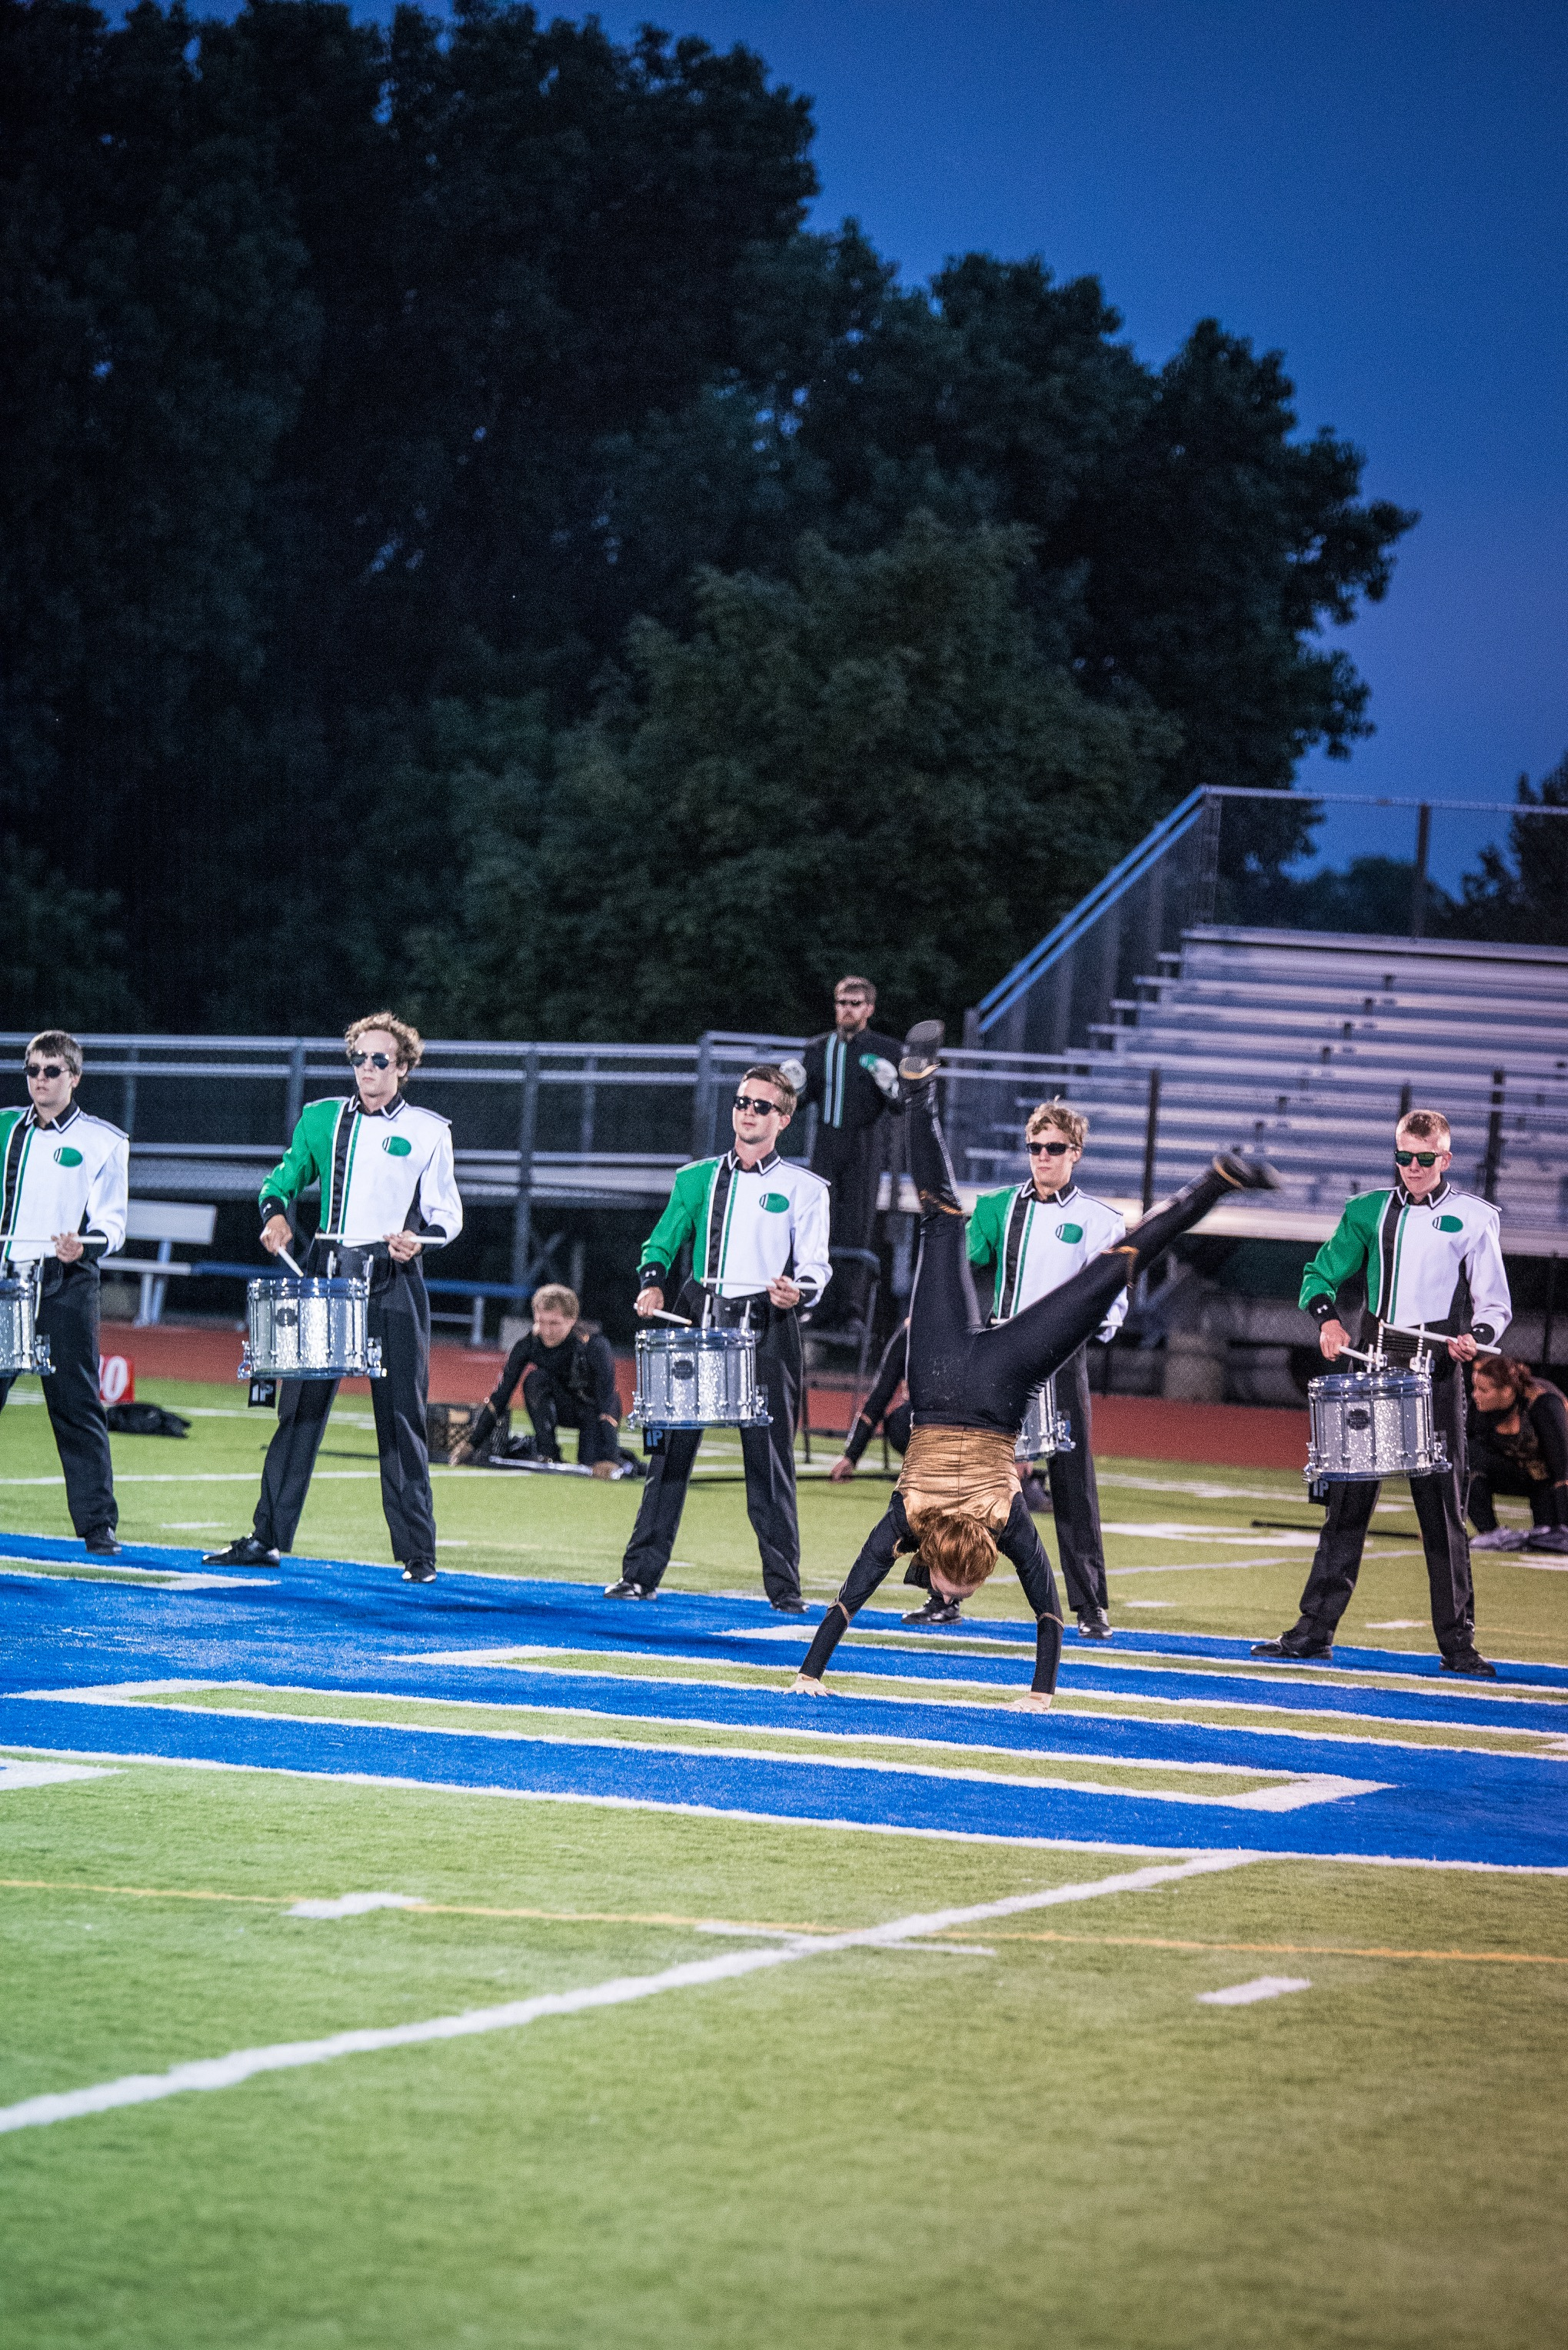 """Colorguard member Alex and members of the snareline perform a snare feature at the beginning of the closing segment of the 2015 production """"Outlaw"""" at the Sounds of Minnesota show hosted at St. Thomas Academy in August.   Photo provided by TwinCitiesMedia.net   Full Resolution"""